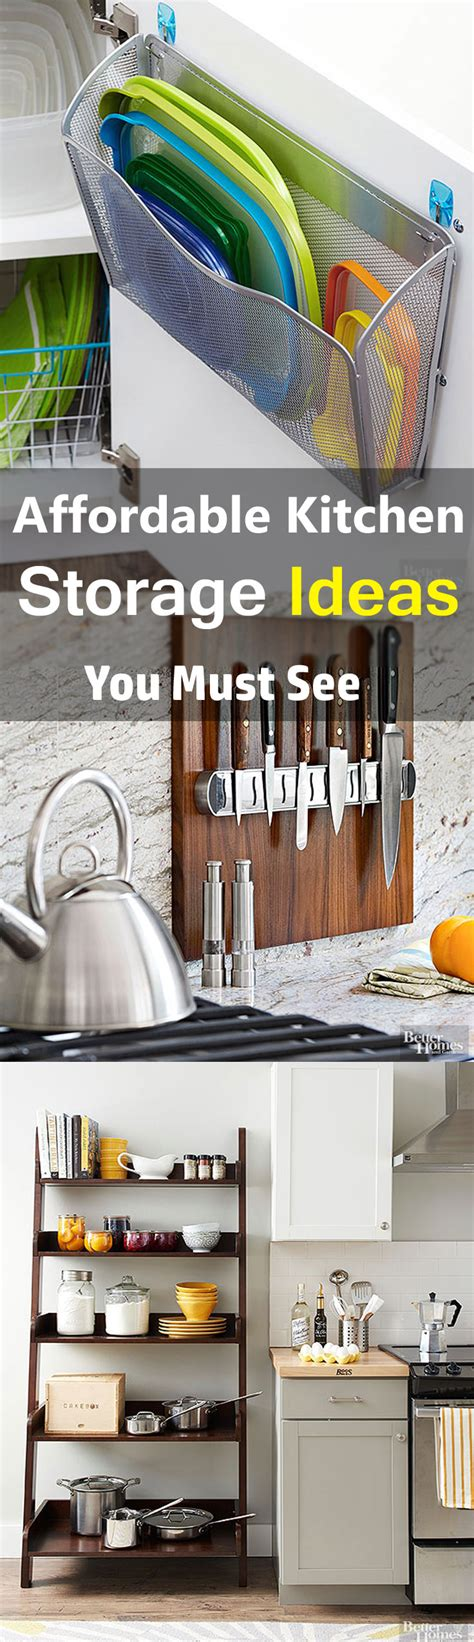 cheap kitchen storage ideas affordable kitchen storage ideas to organize kitchen well